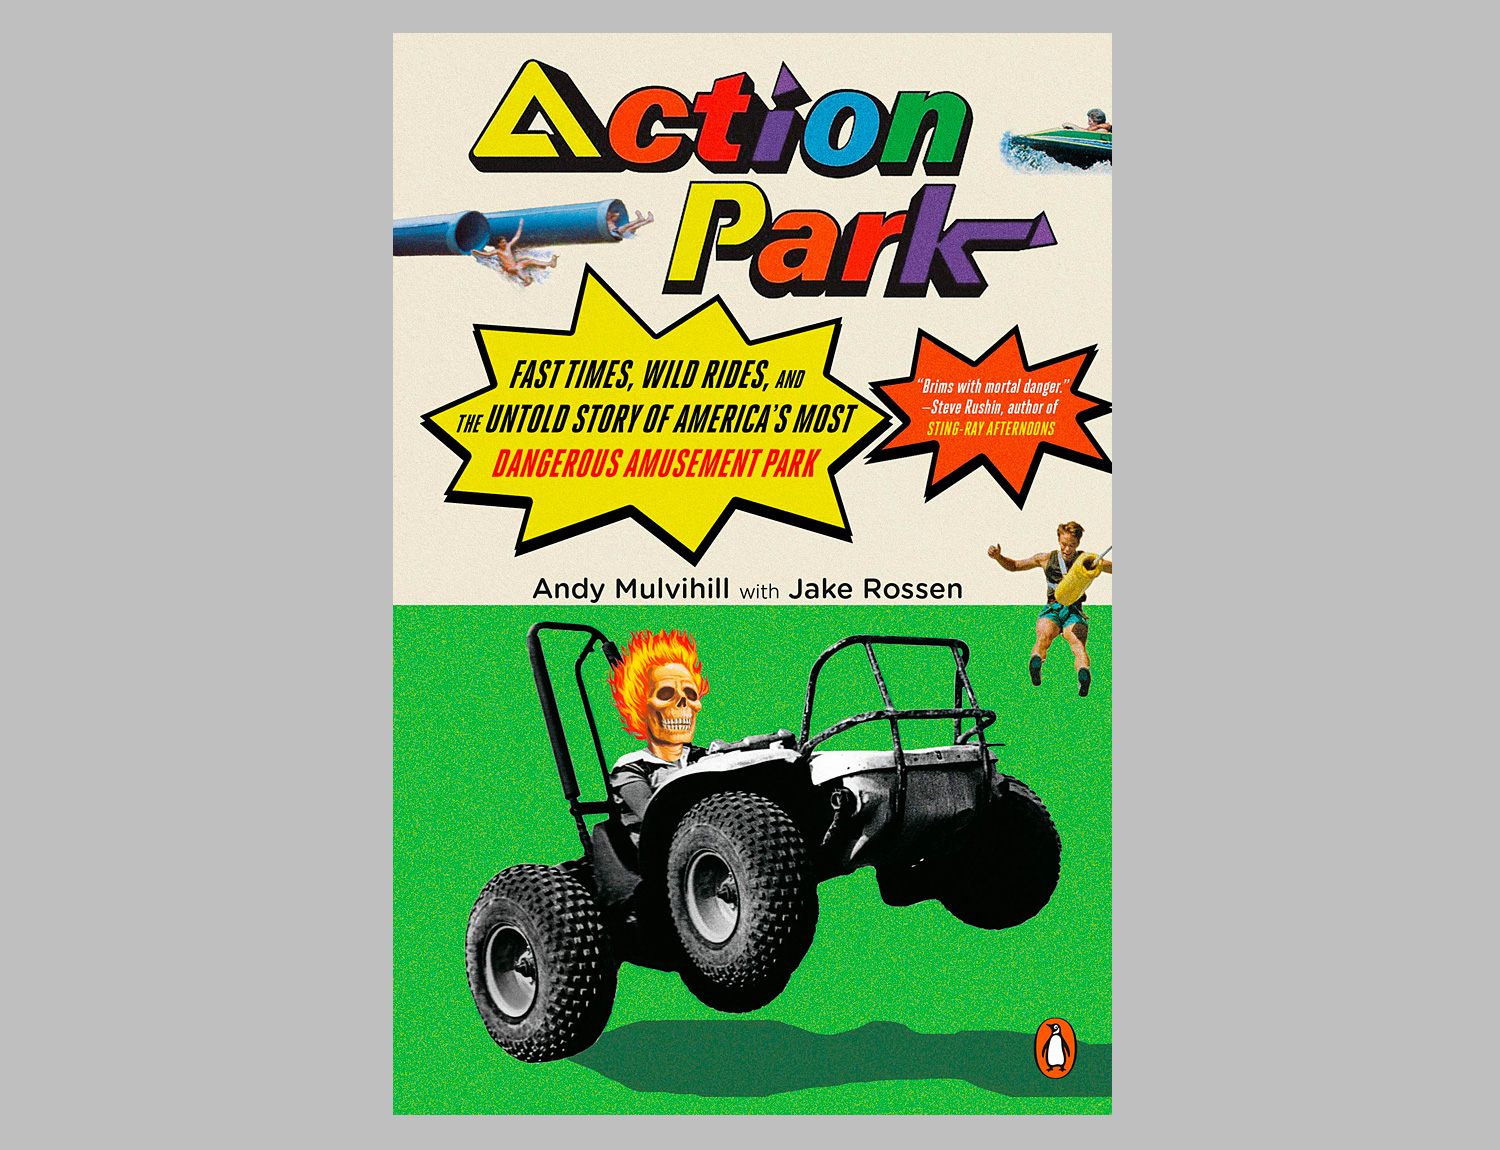 Action Park, America's Most Dangerous Amusement Park at werd.com